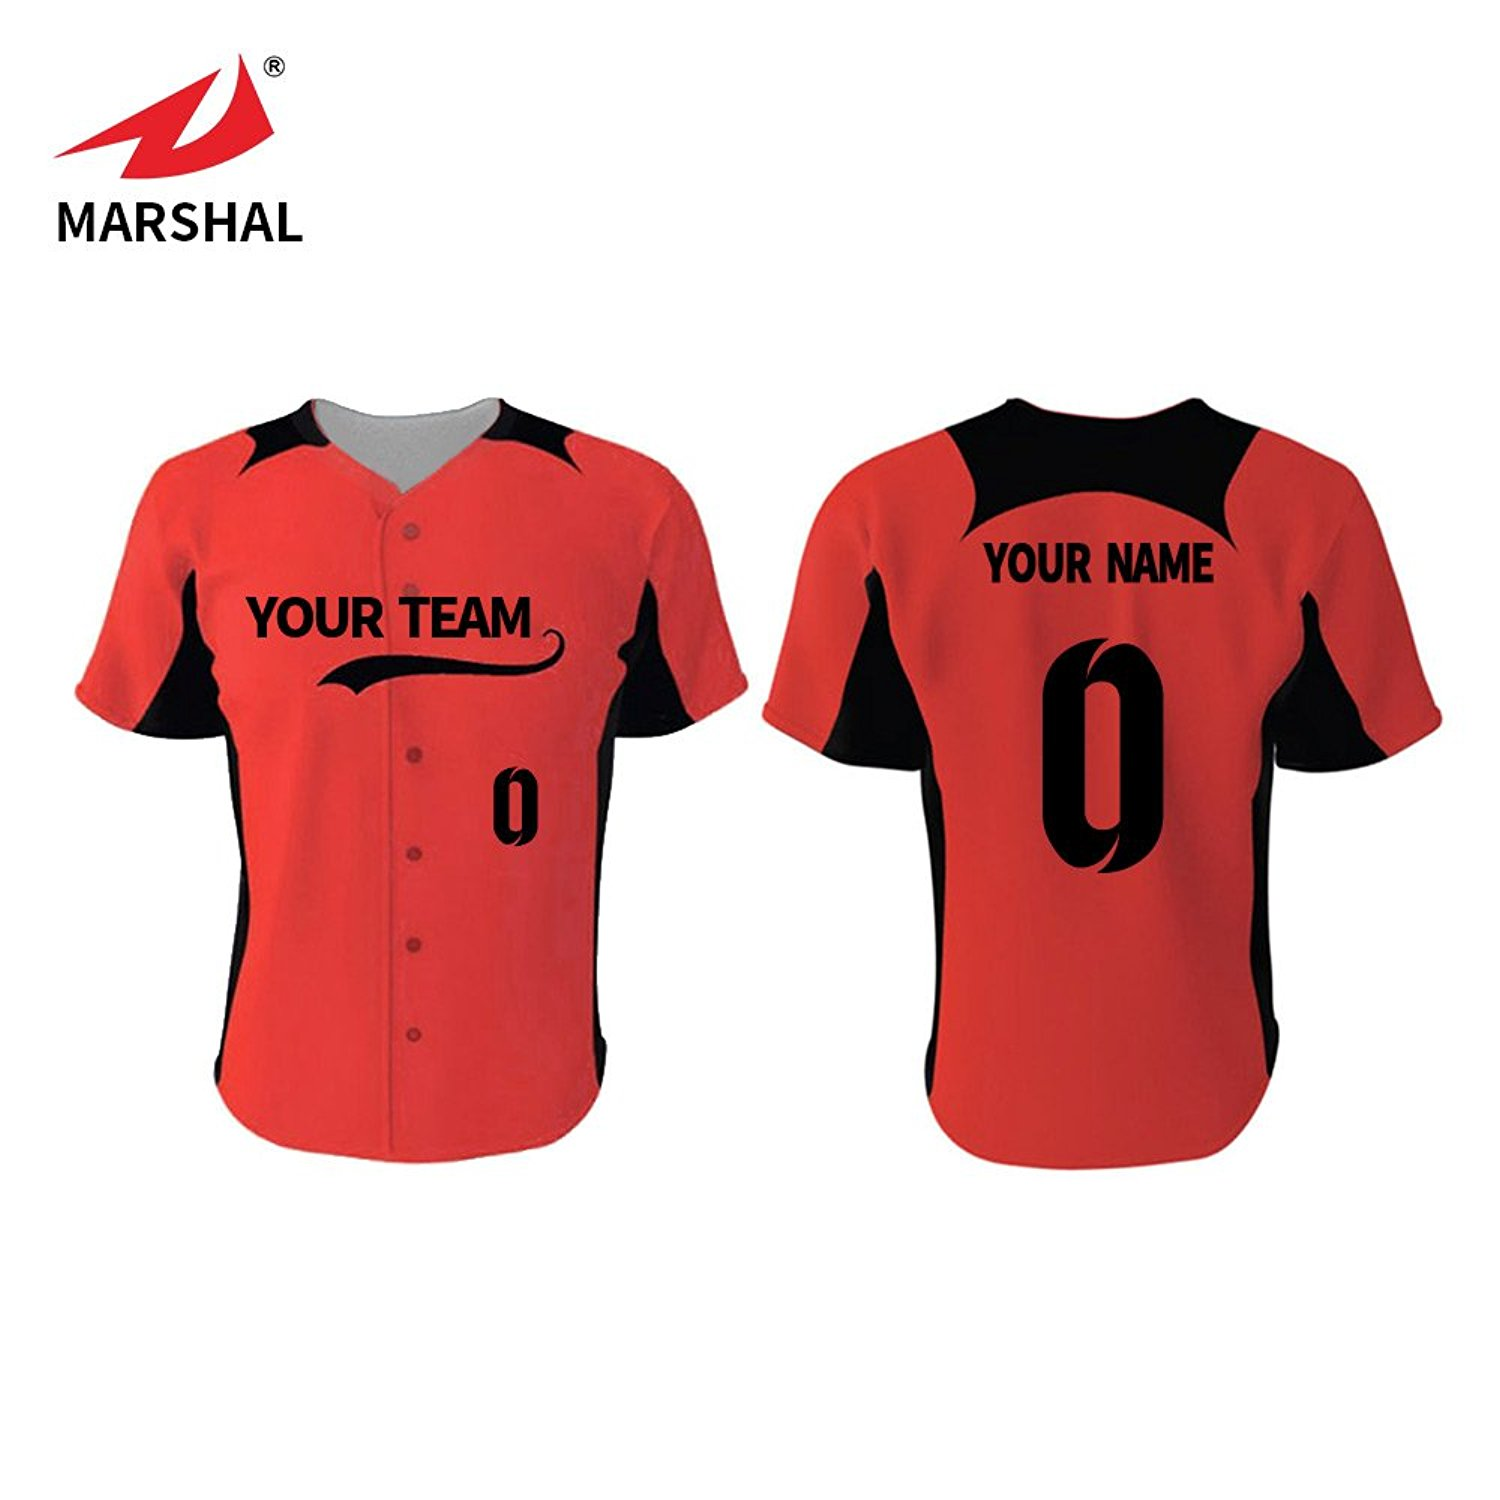 9ab1f59ac37 Get Quotations · Marshal Jersey Custom Baseball Jersey Full Sublimation  Sport Fabric Custom Your Team Name Your Number